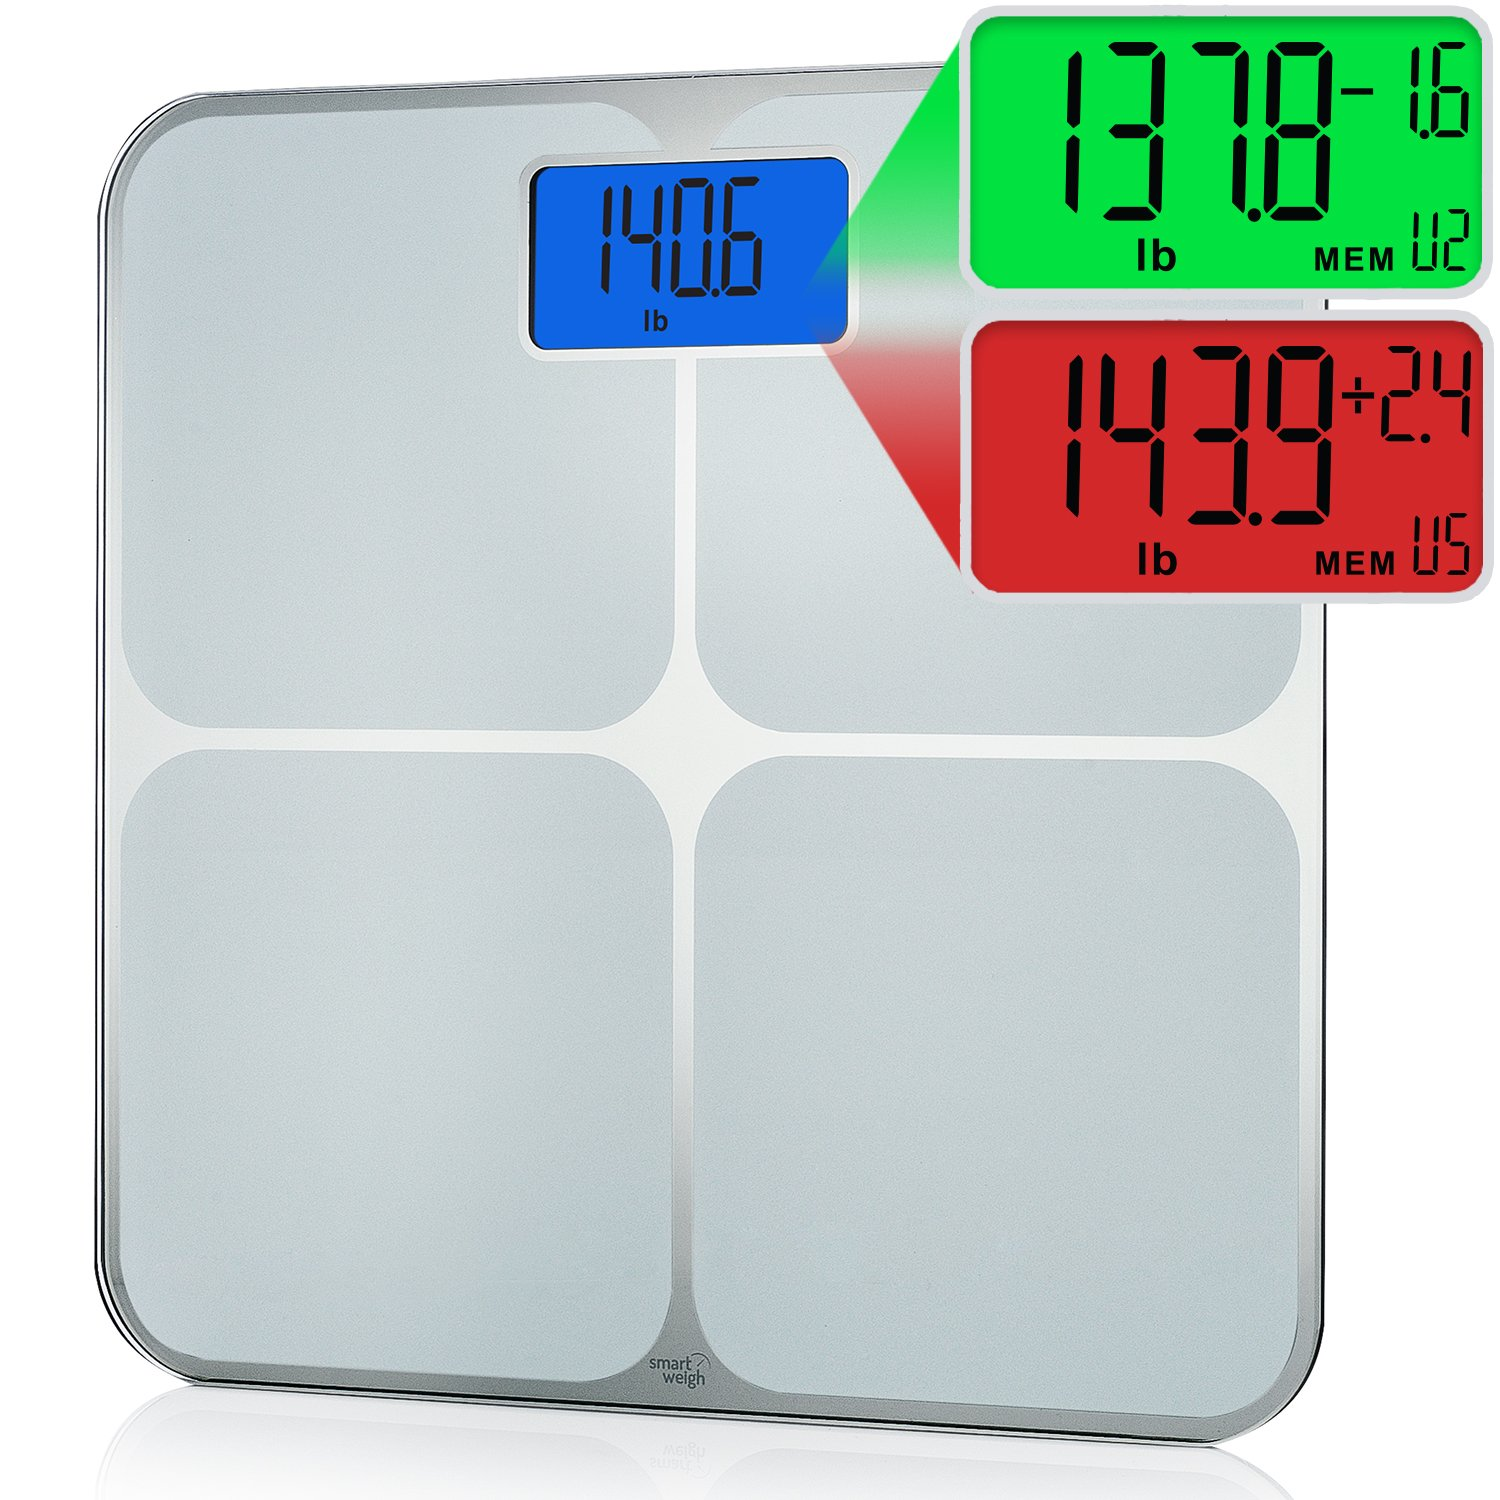 Smart Weigh Digital Body Weight Bathroom Scale with Weight Tracking and Step-On Technology, 440 Pounds, Recognizes and Stores 8 Users [2017 Upgraded Version]